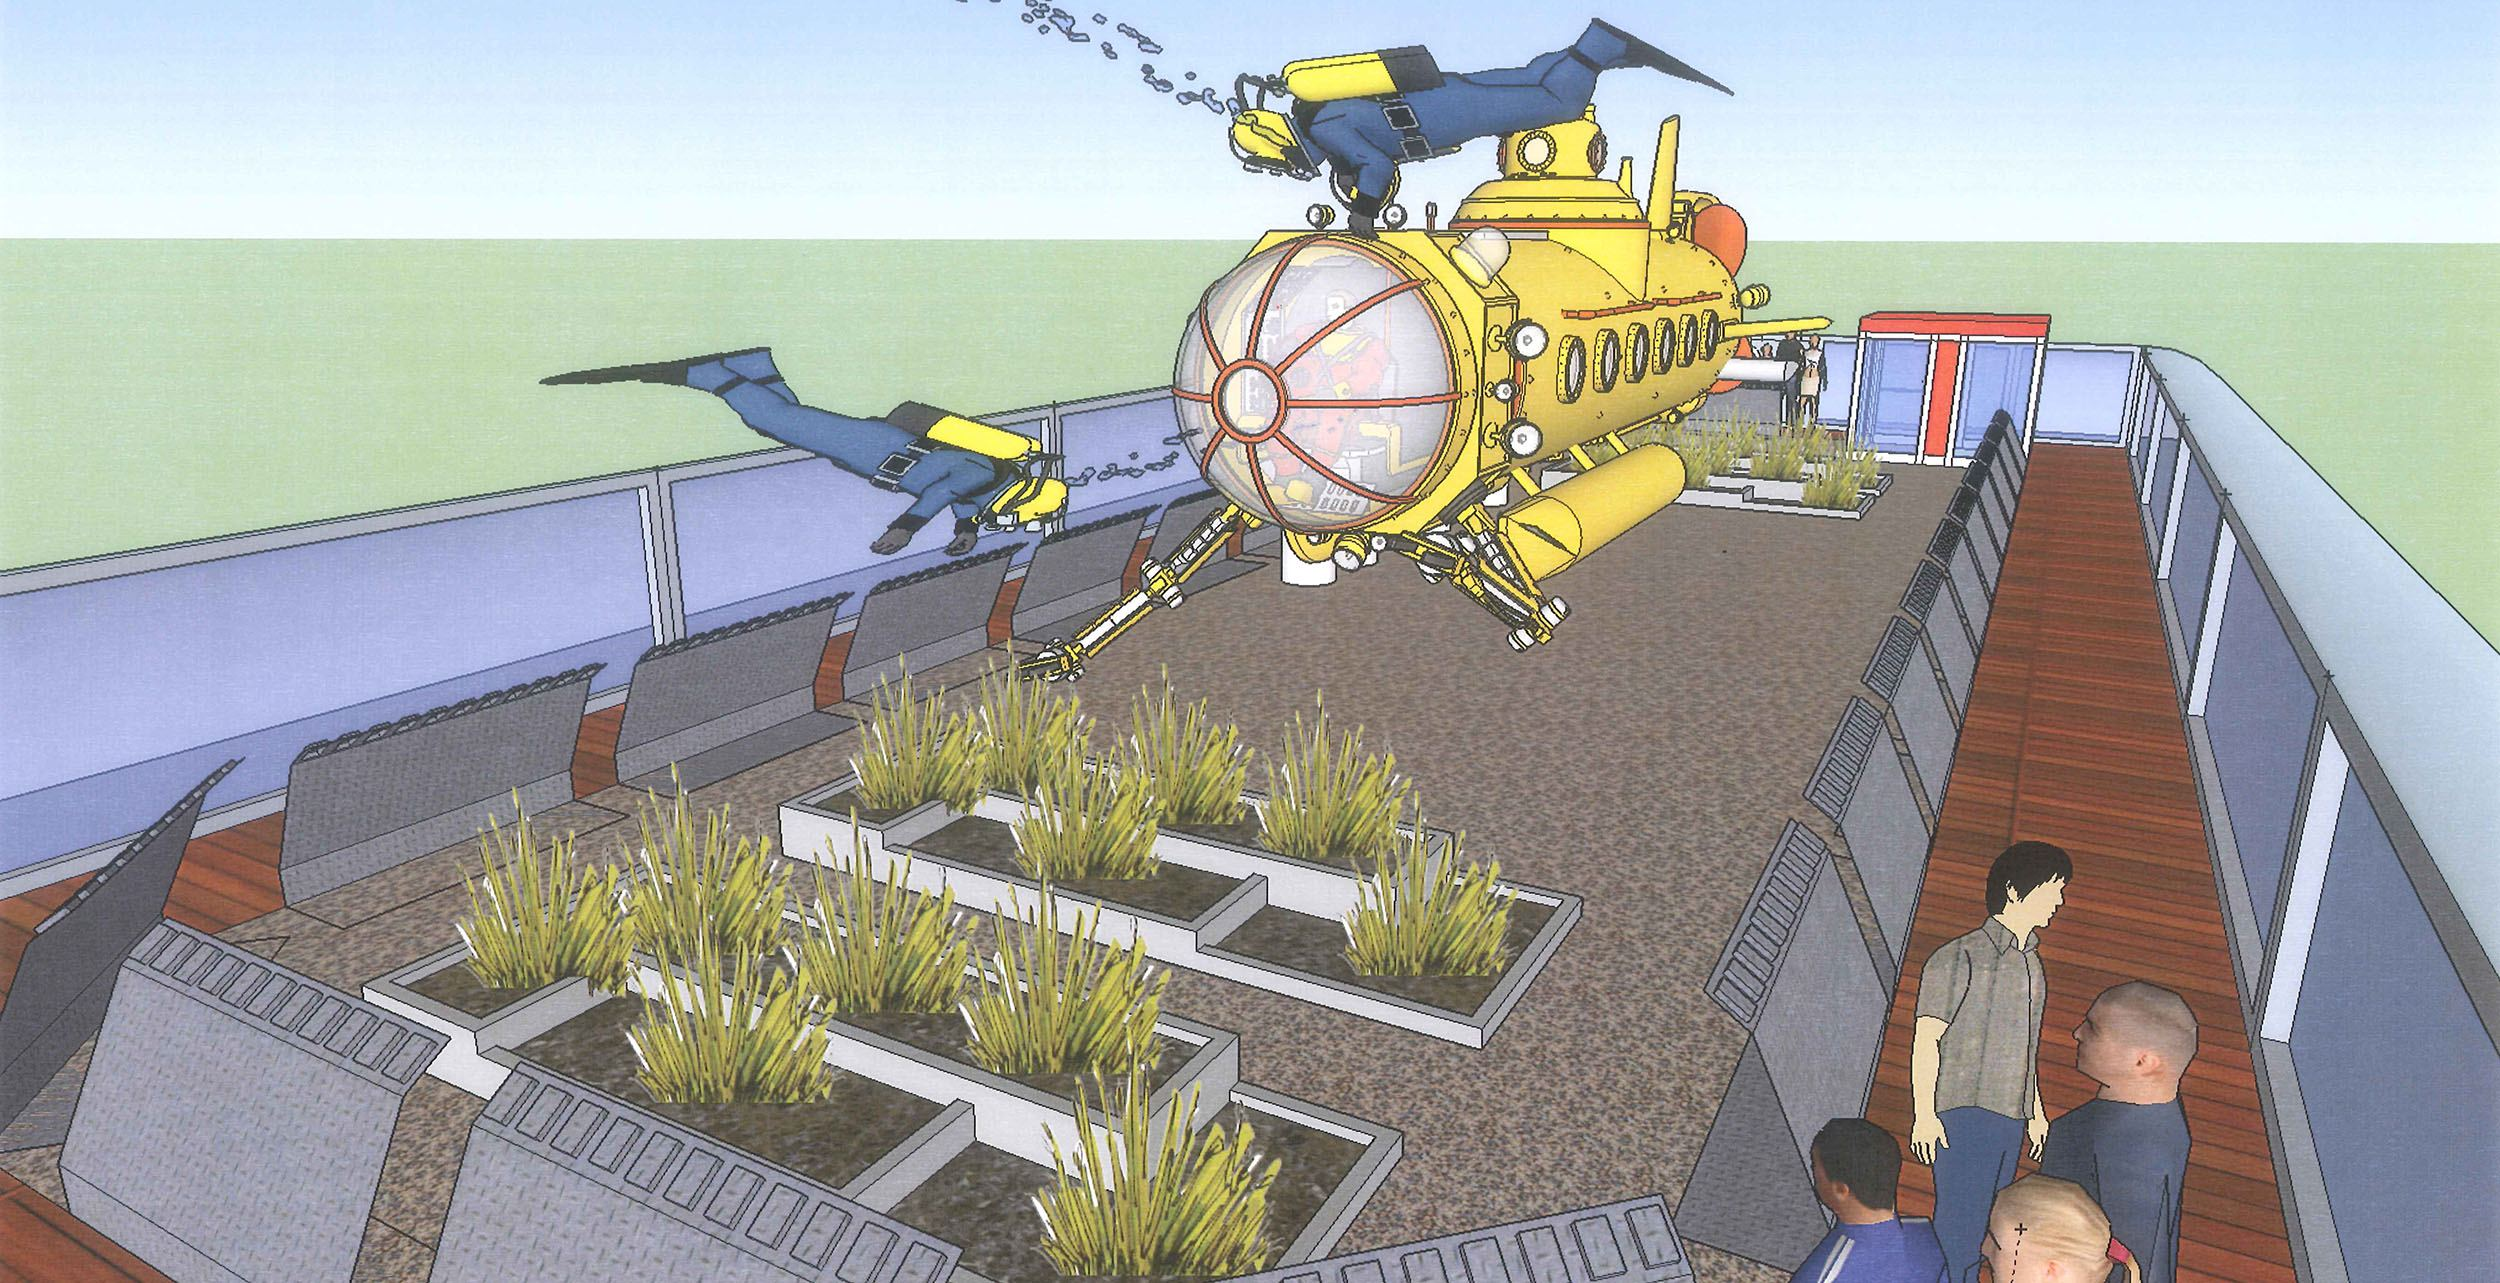 Rendering of the planned rooftop for the new McBarge (New McBarge campaign)